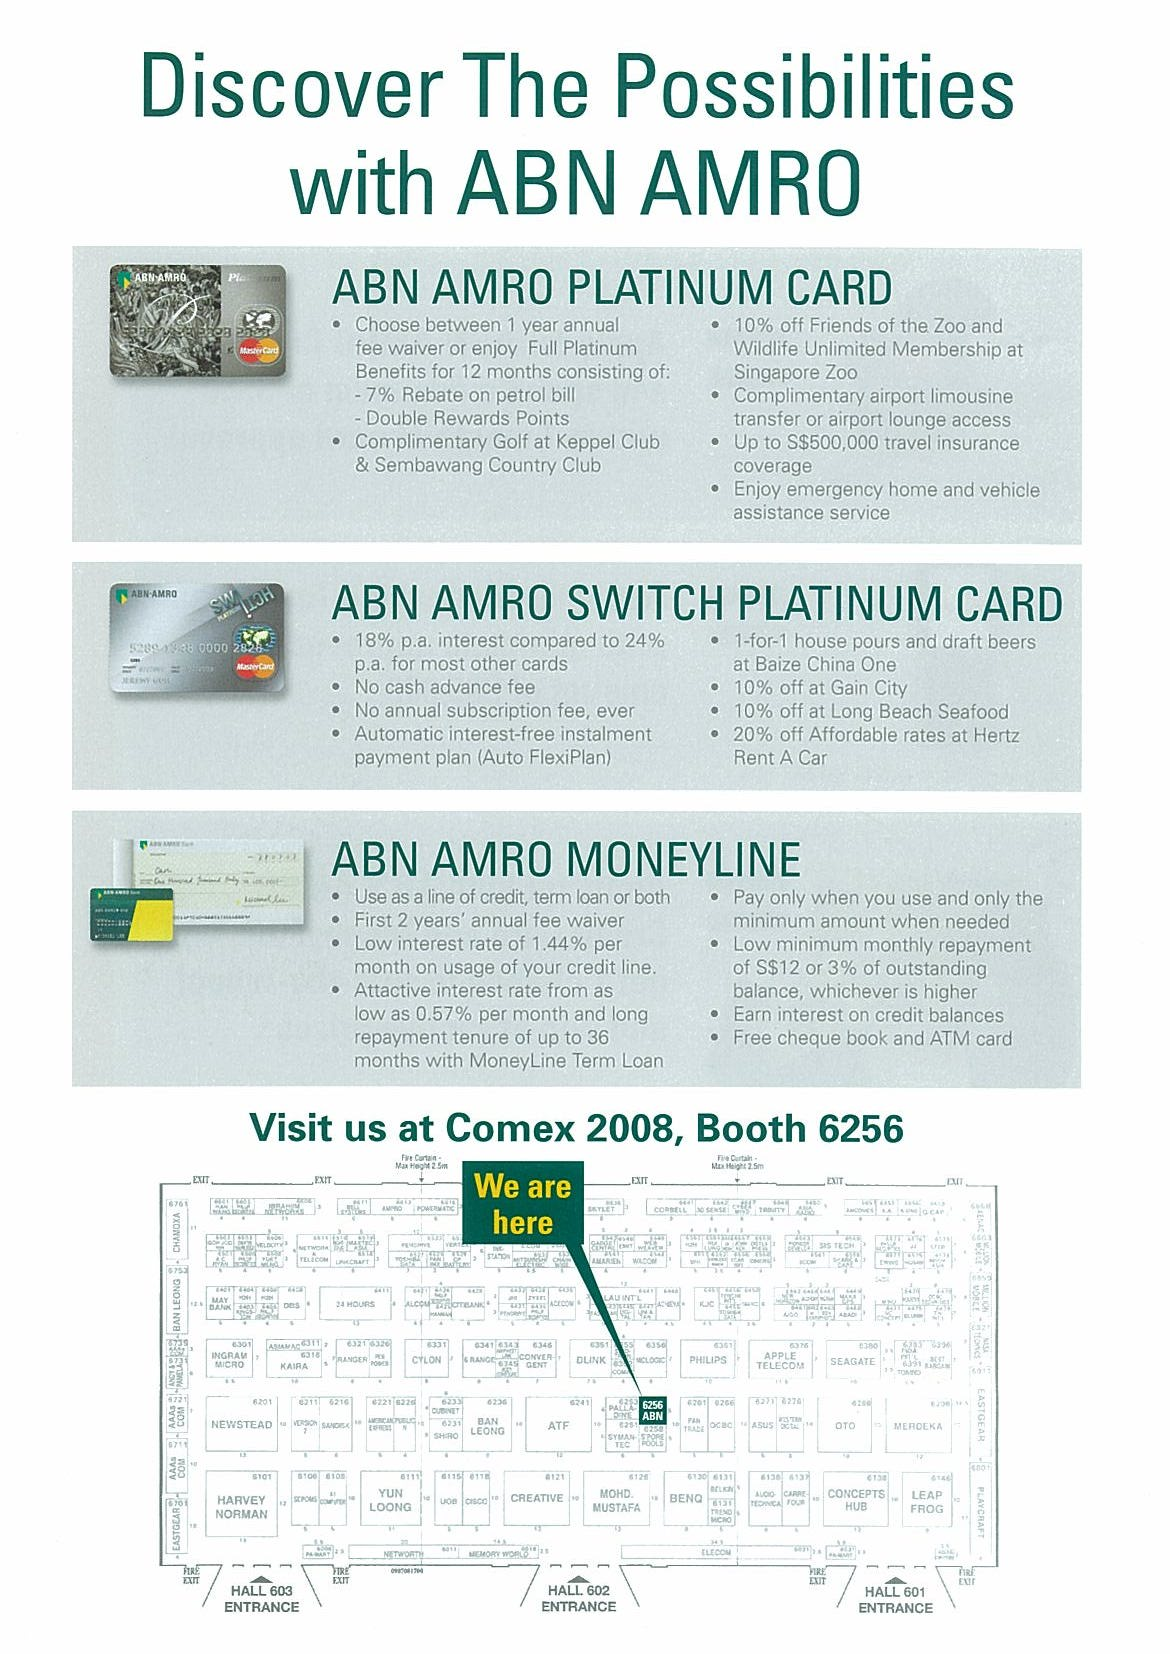 Comex 2008 price list image brochure of ABN AMRO Page 2